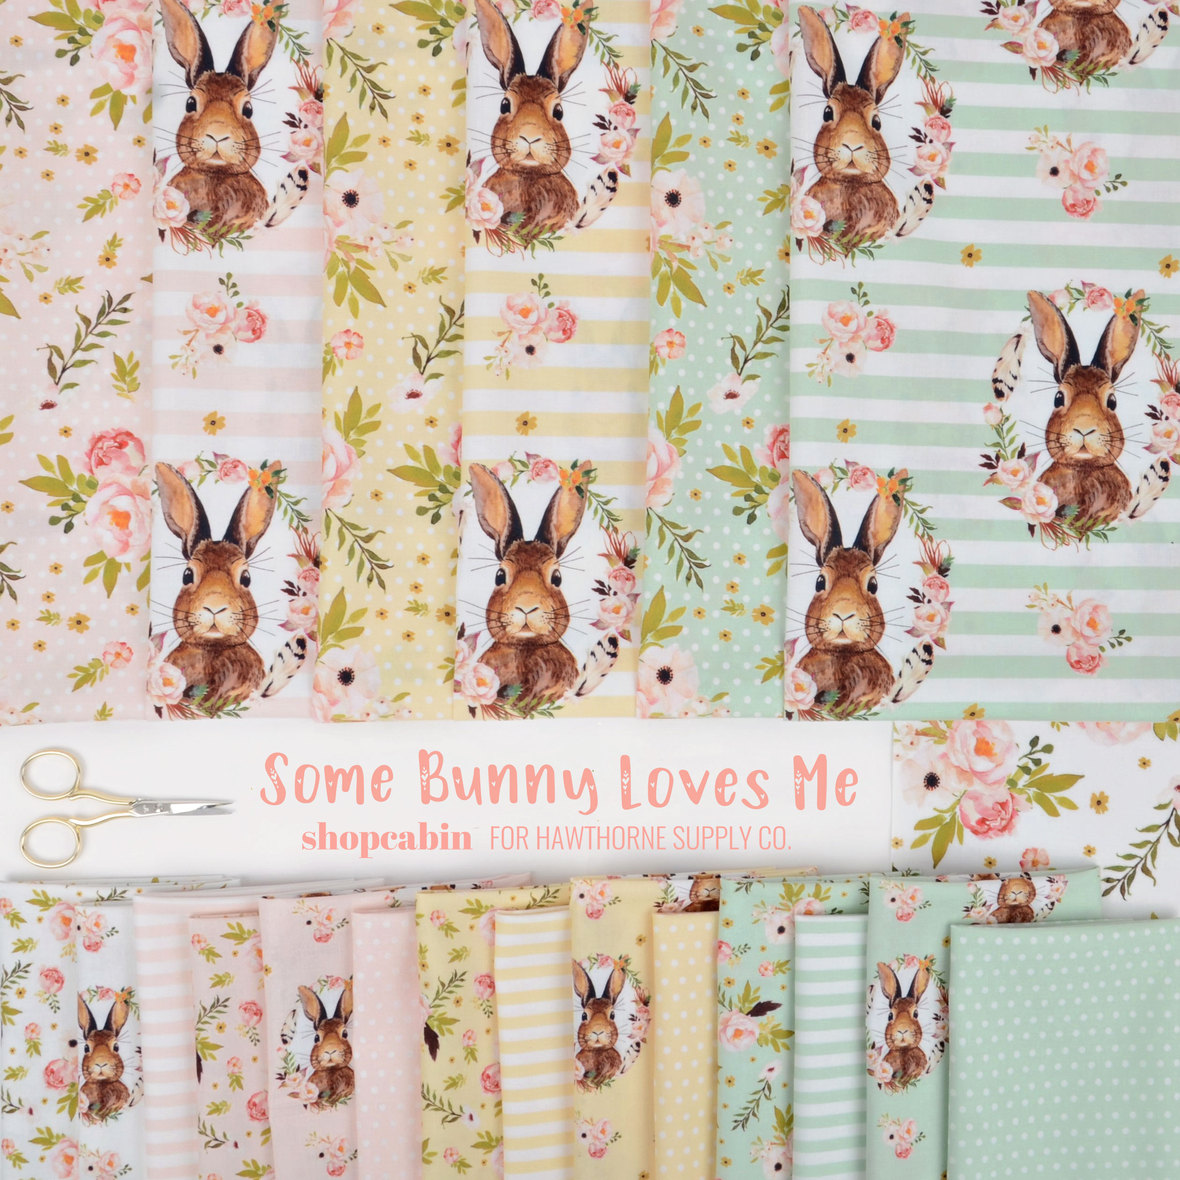 Some-Bunny-Loves-Me-Fabric-Shopcabin-at-Hawthorne-Supply-Co